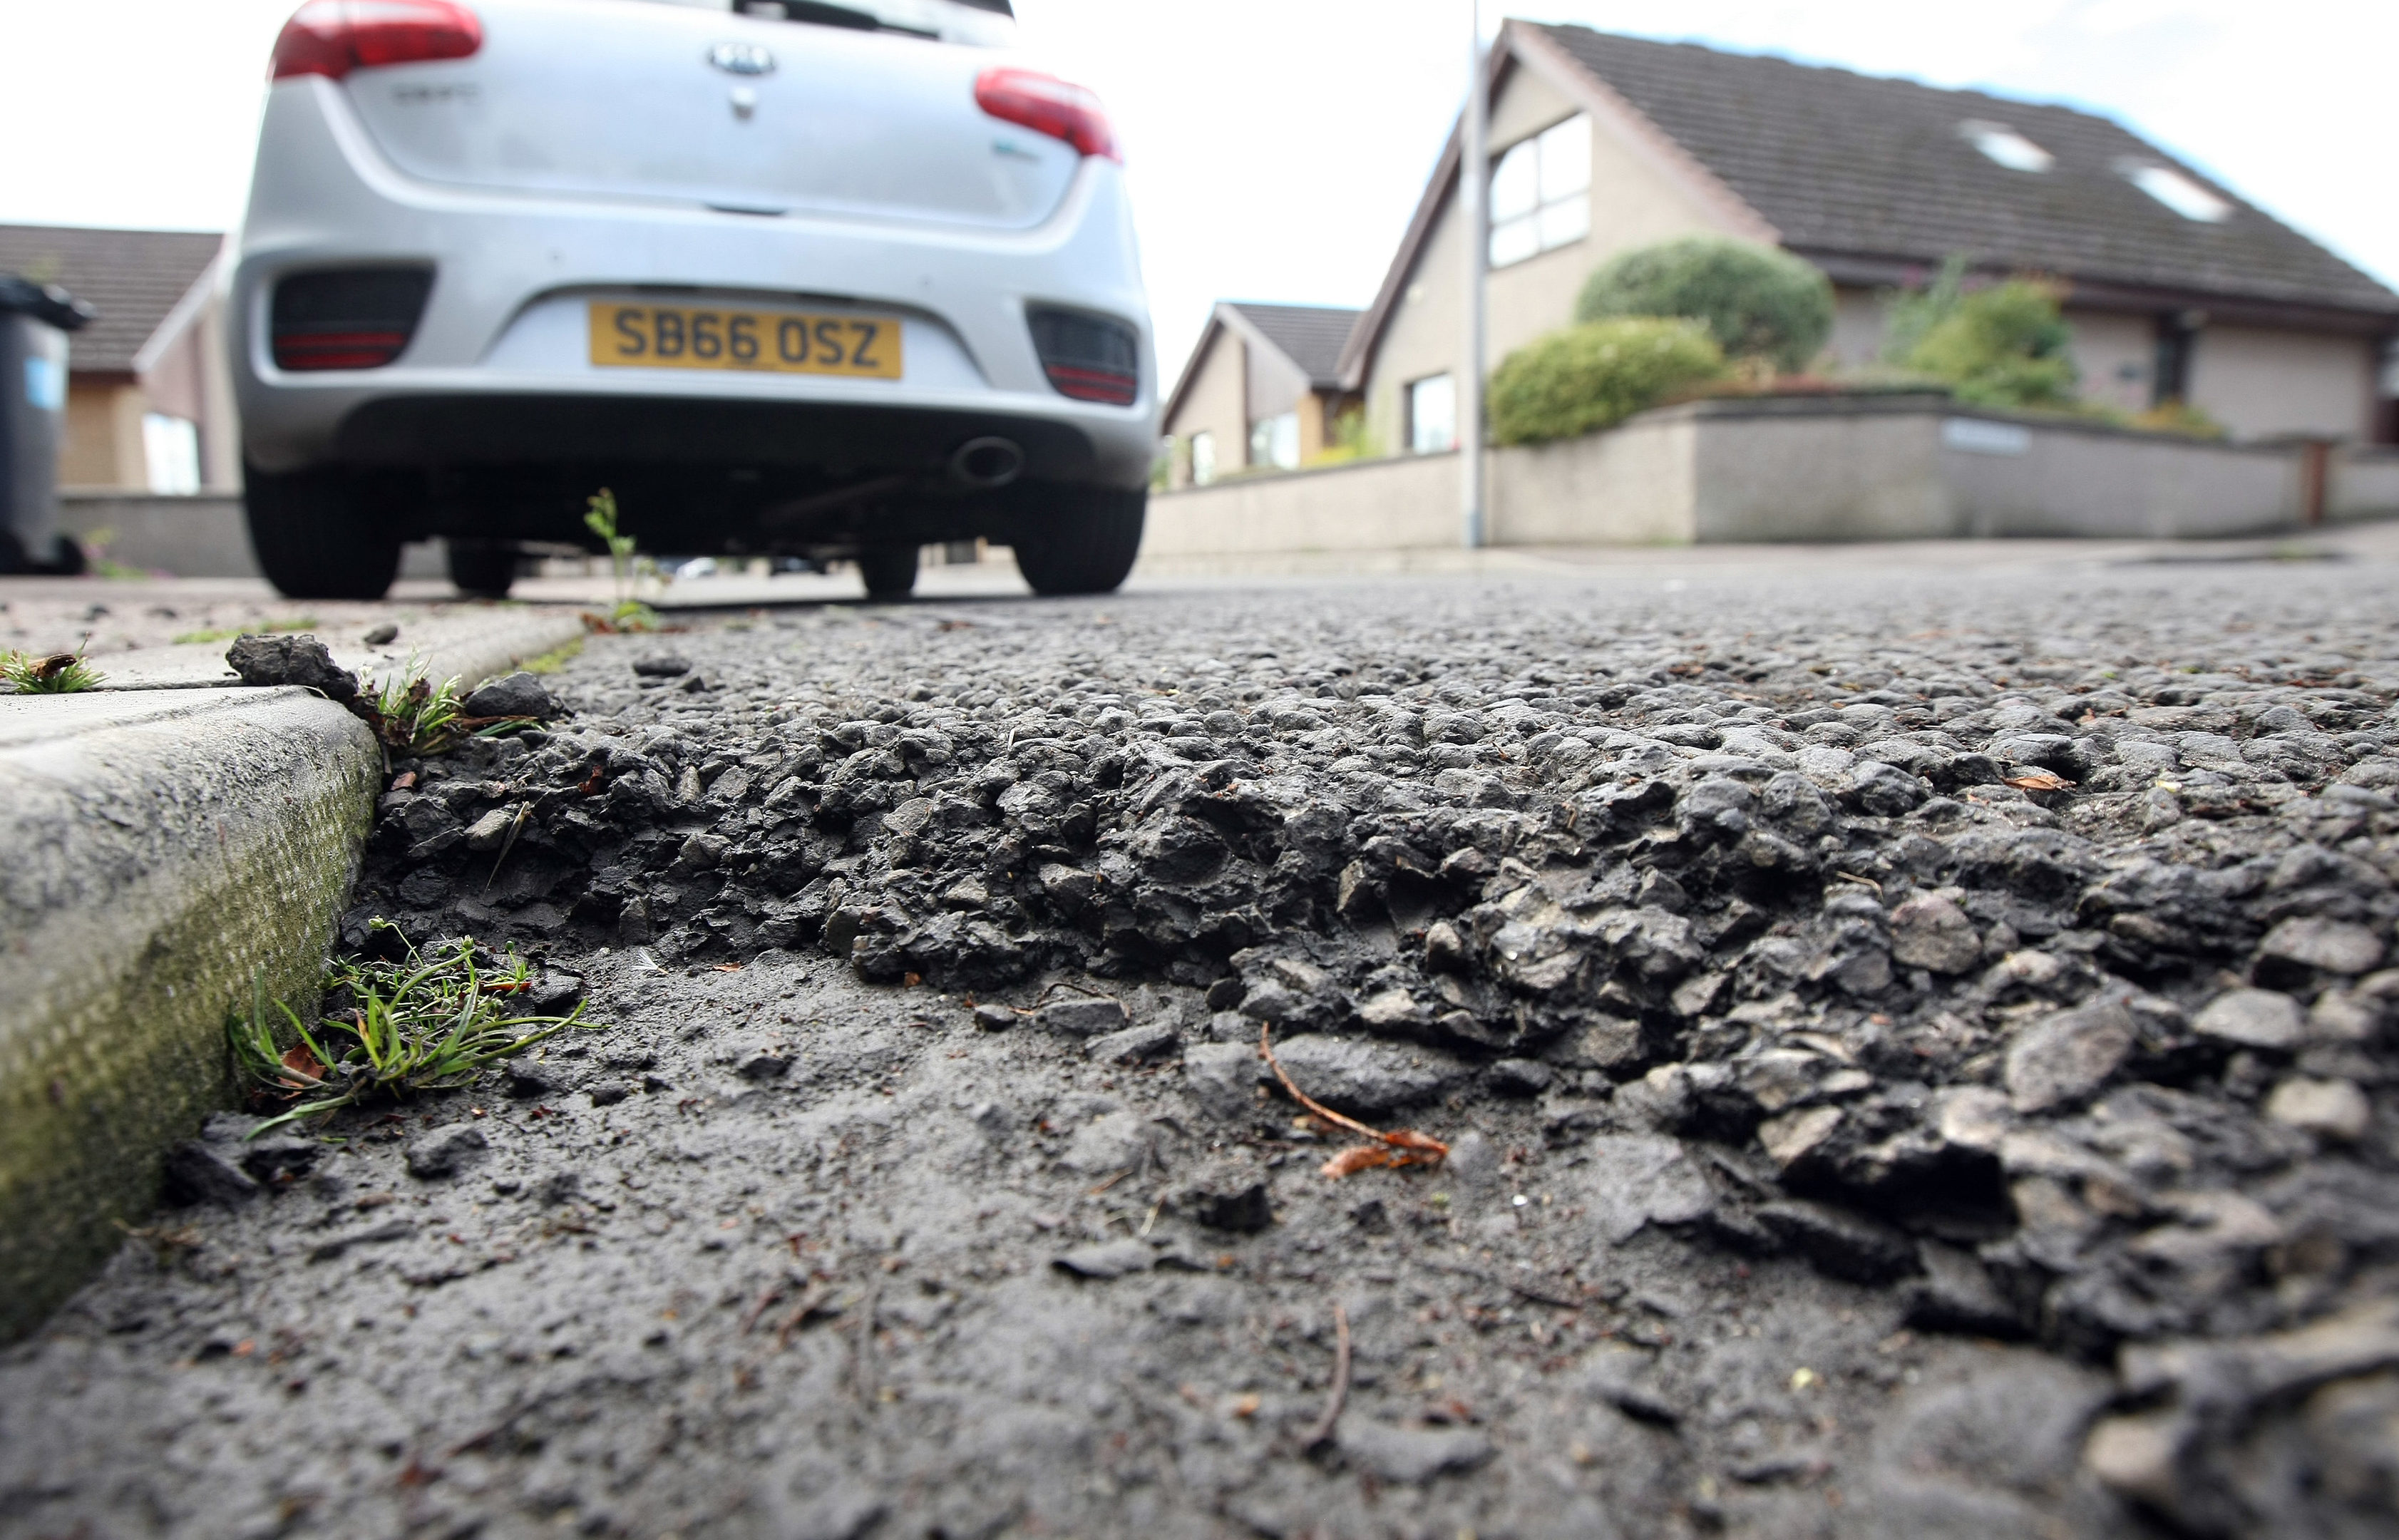 Fife's potholes are getting worse